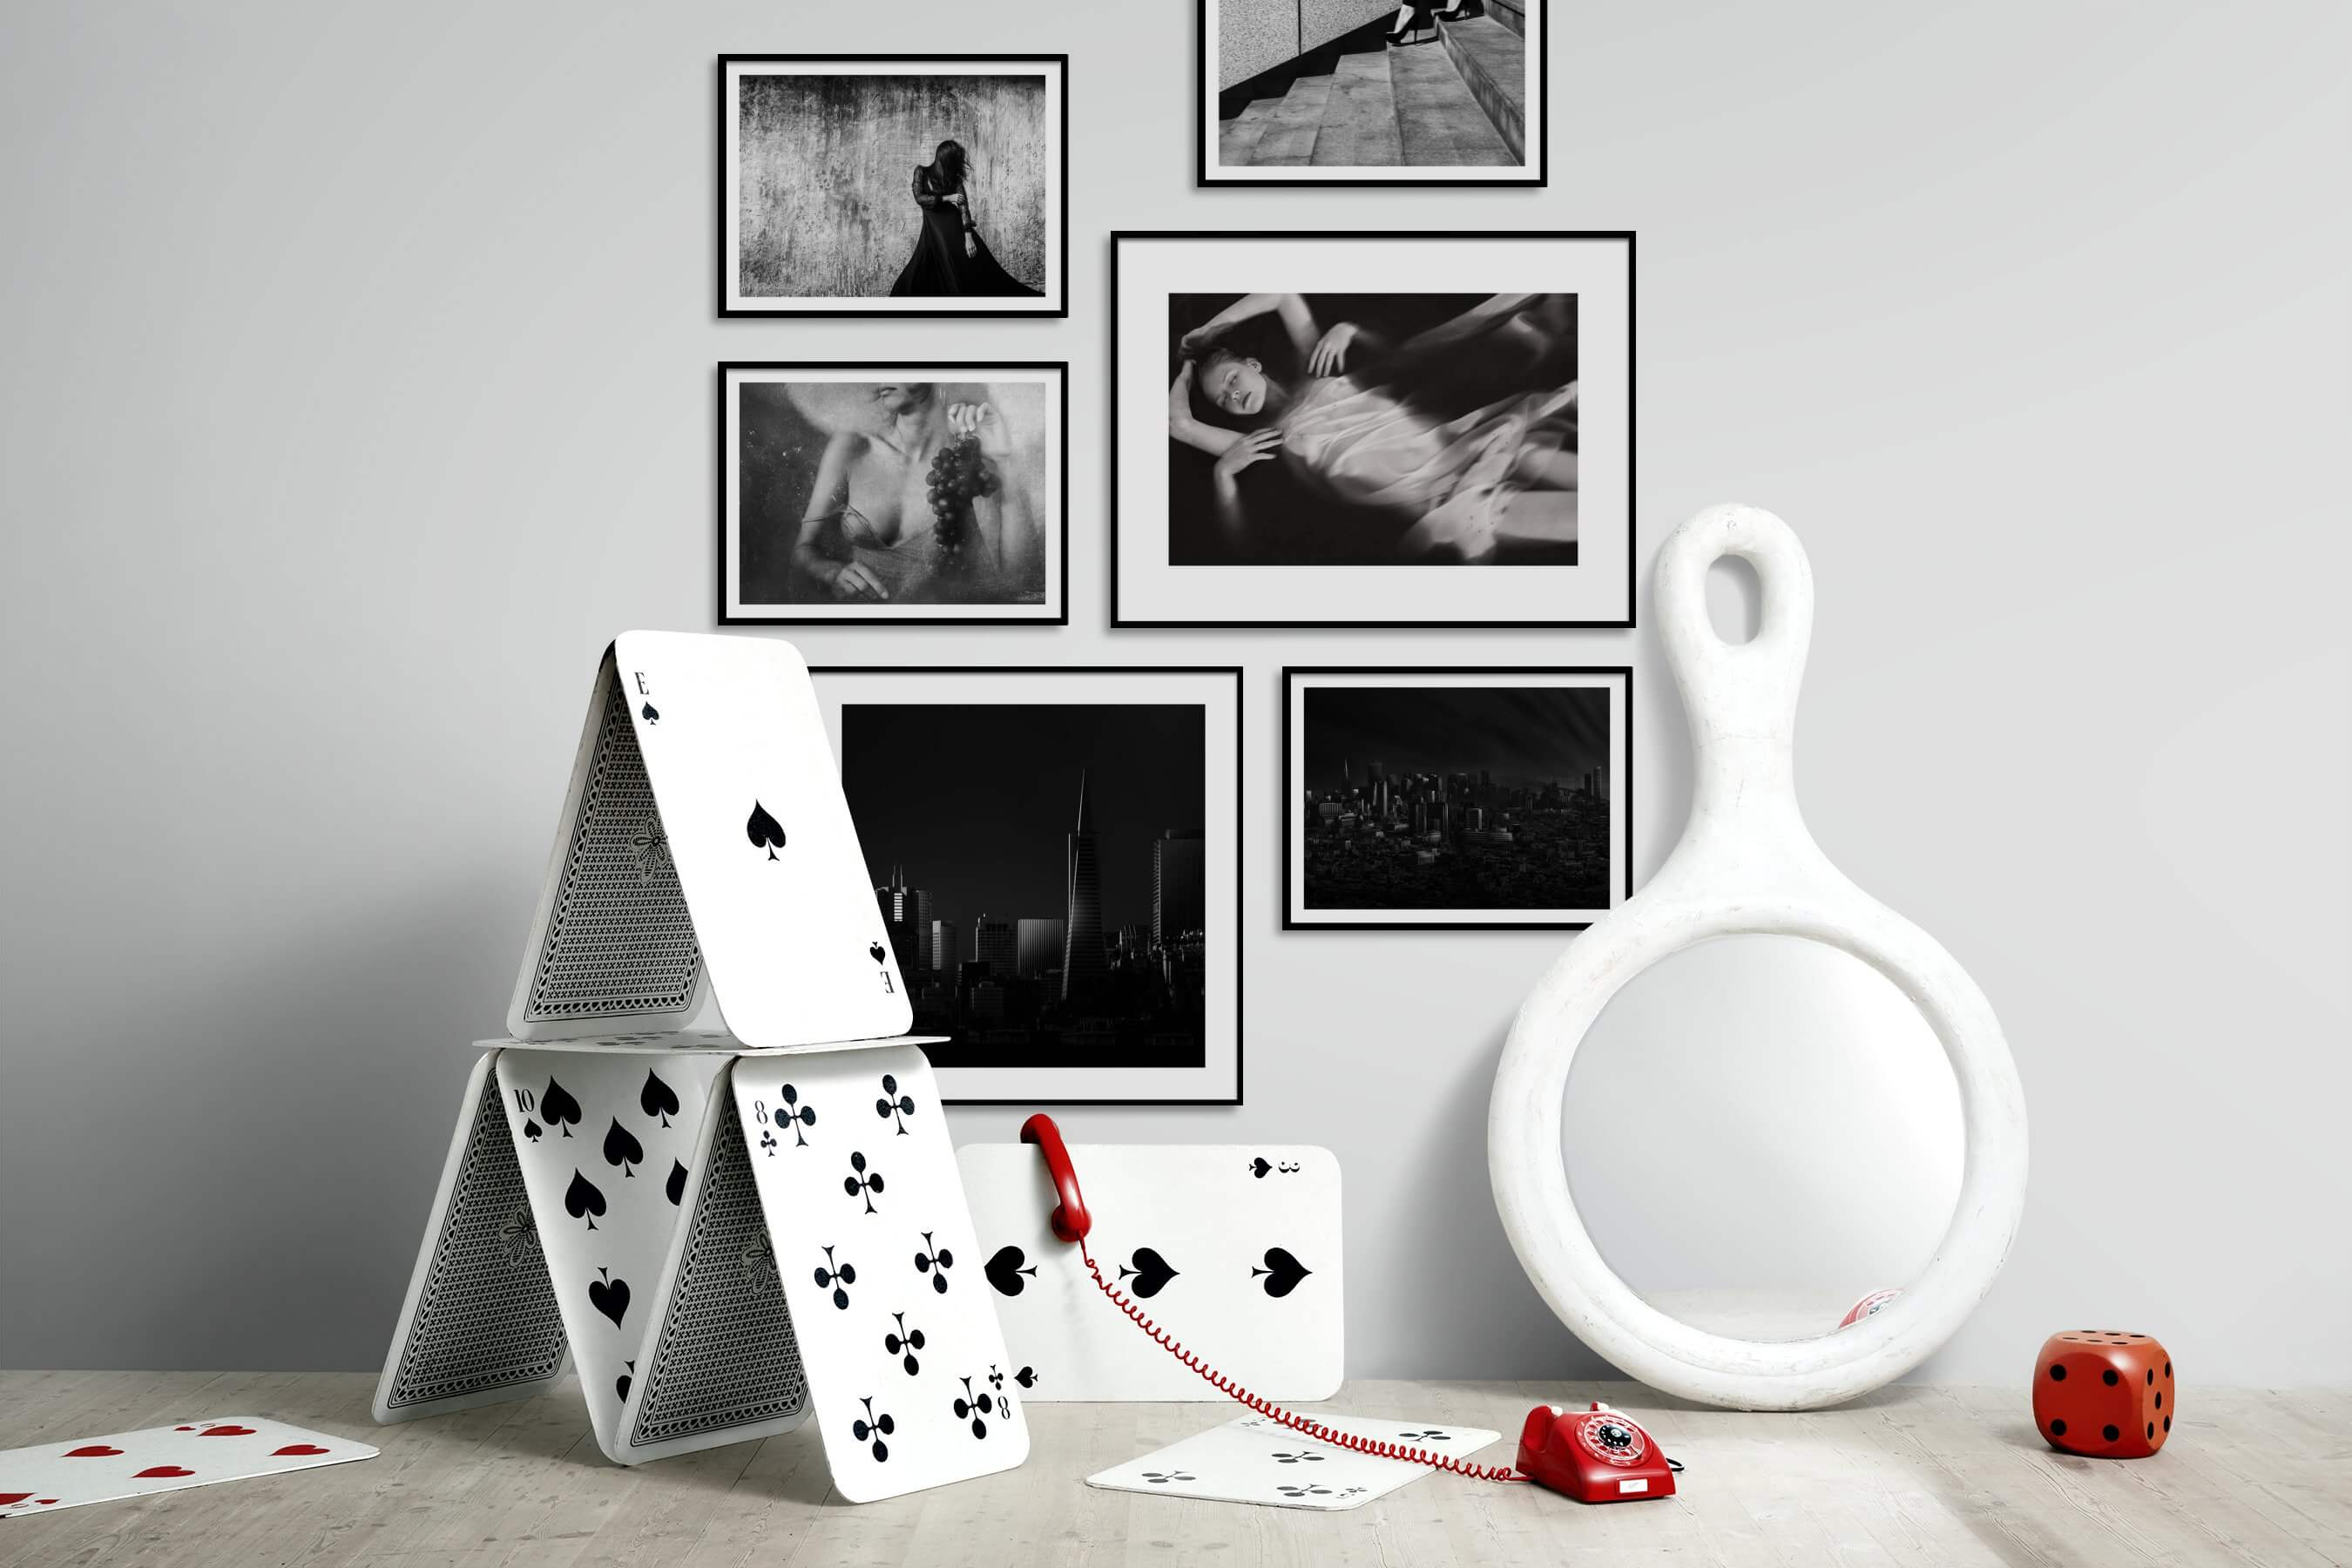 Gallery wall idea with six framed pictures arranged on a wall depicting Fashion & Beauty, Black & White, For the Moderate, Vintage, Artsy, For the Minimalist, City Life, and Americana